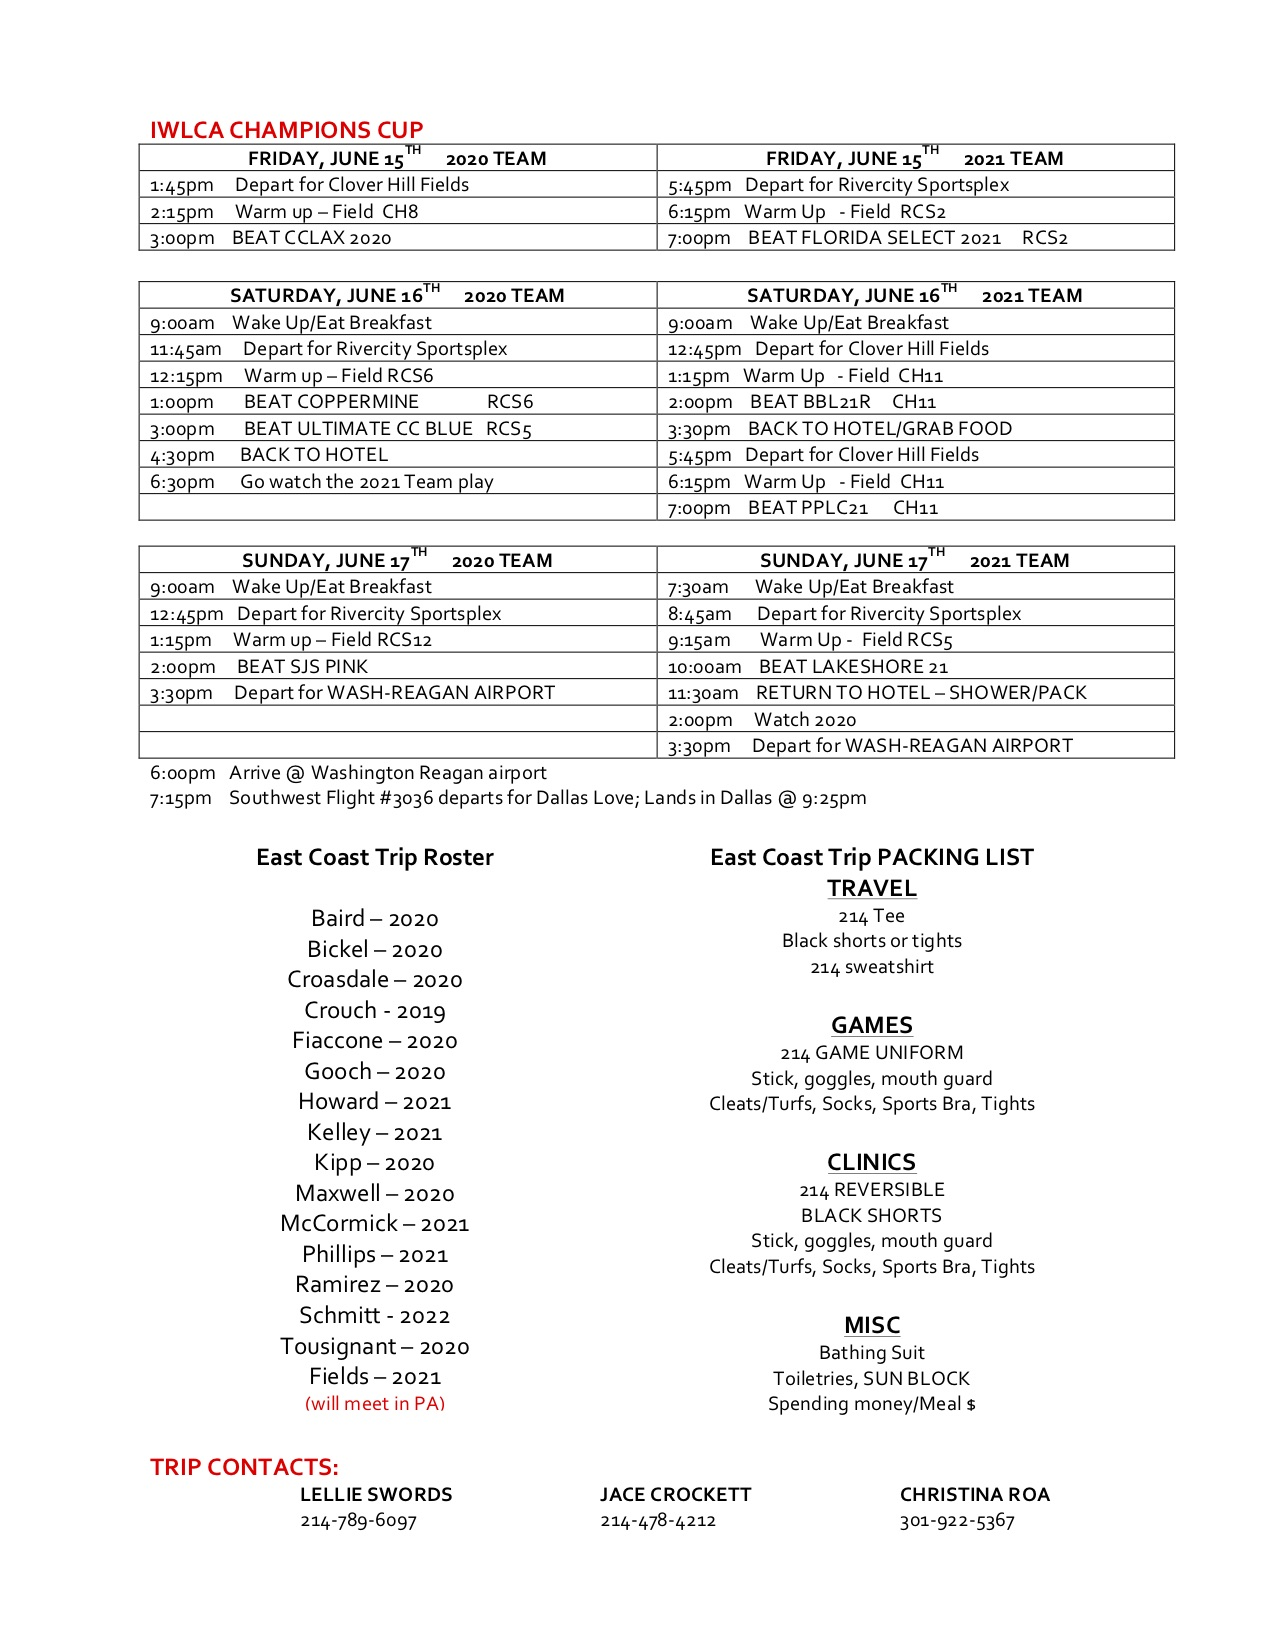 pg2-v4-214LC EAST COAST EXCURSION Itinerary v4.jpg